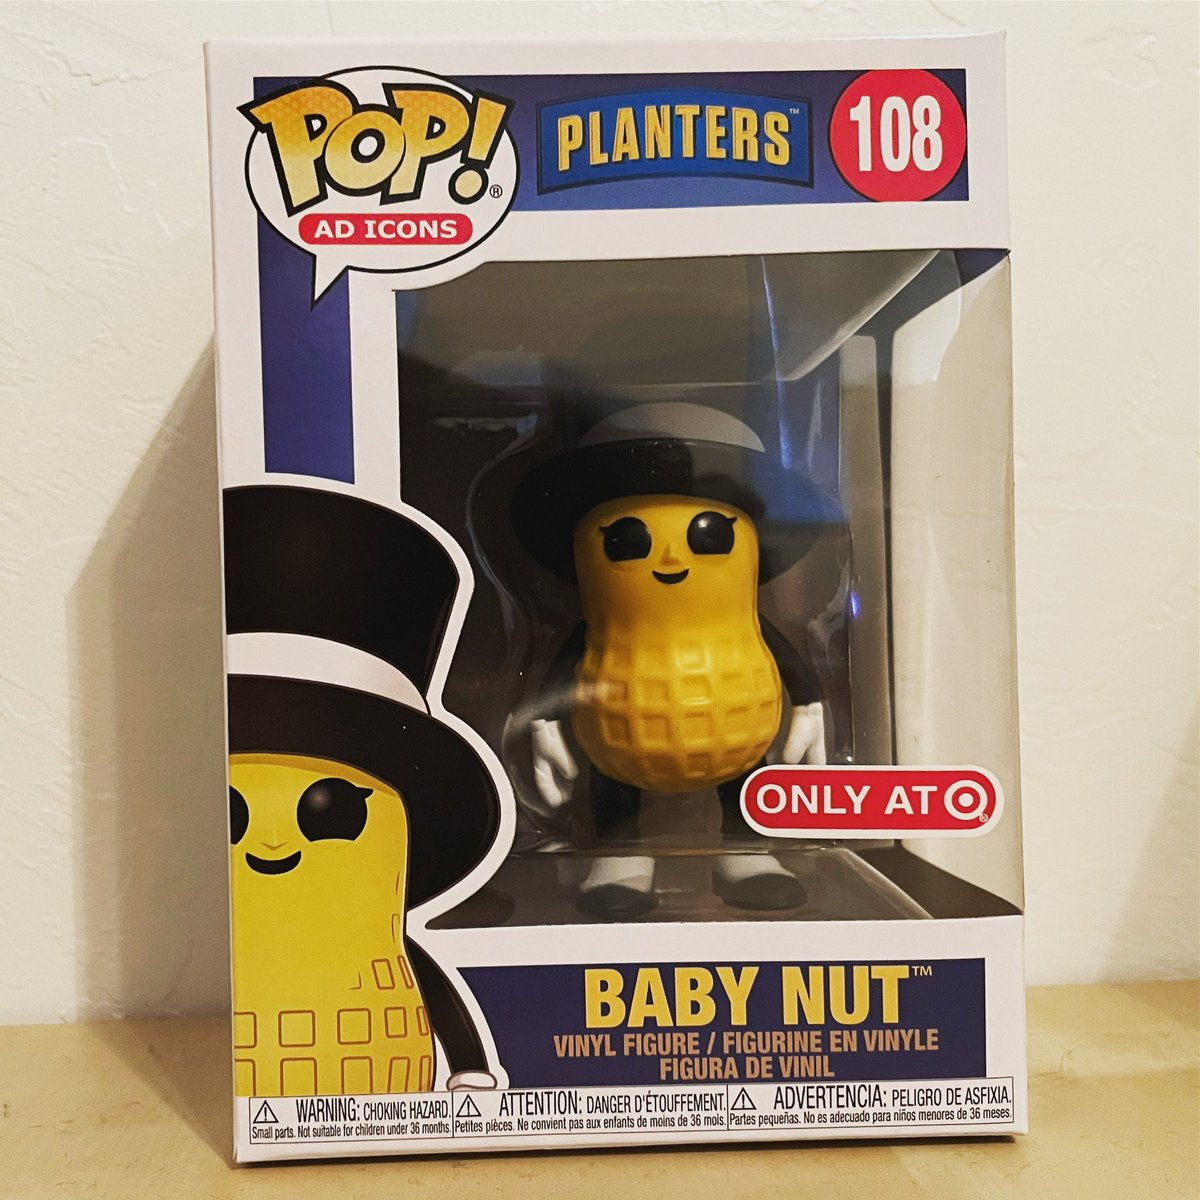 Baby Nut has finally arrived! Still waiting on the flocked Slush Puppie though #funko #funkopop #funkopops #funkoadicons #adicons #babynut #planters #planterspeanuts https://t.co/nHxyLgz9Po